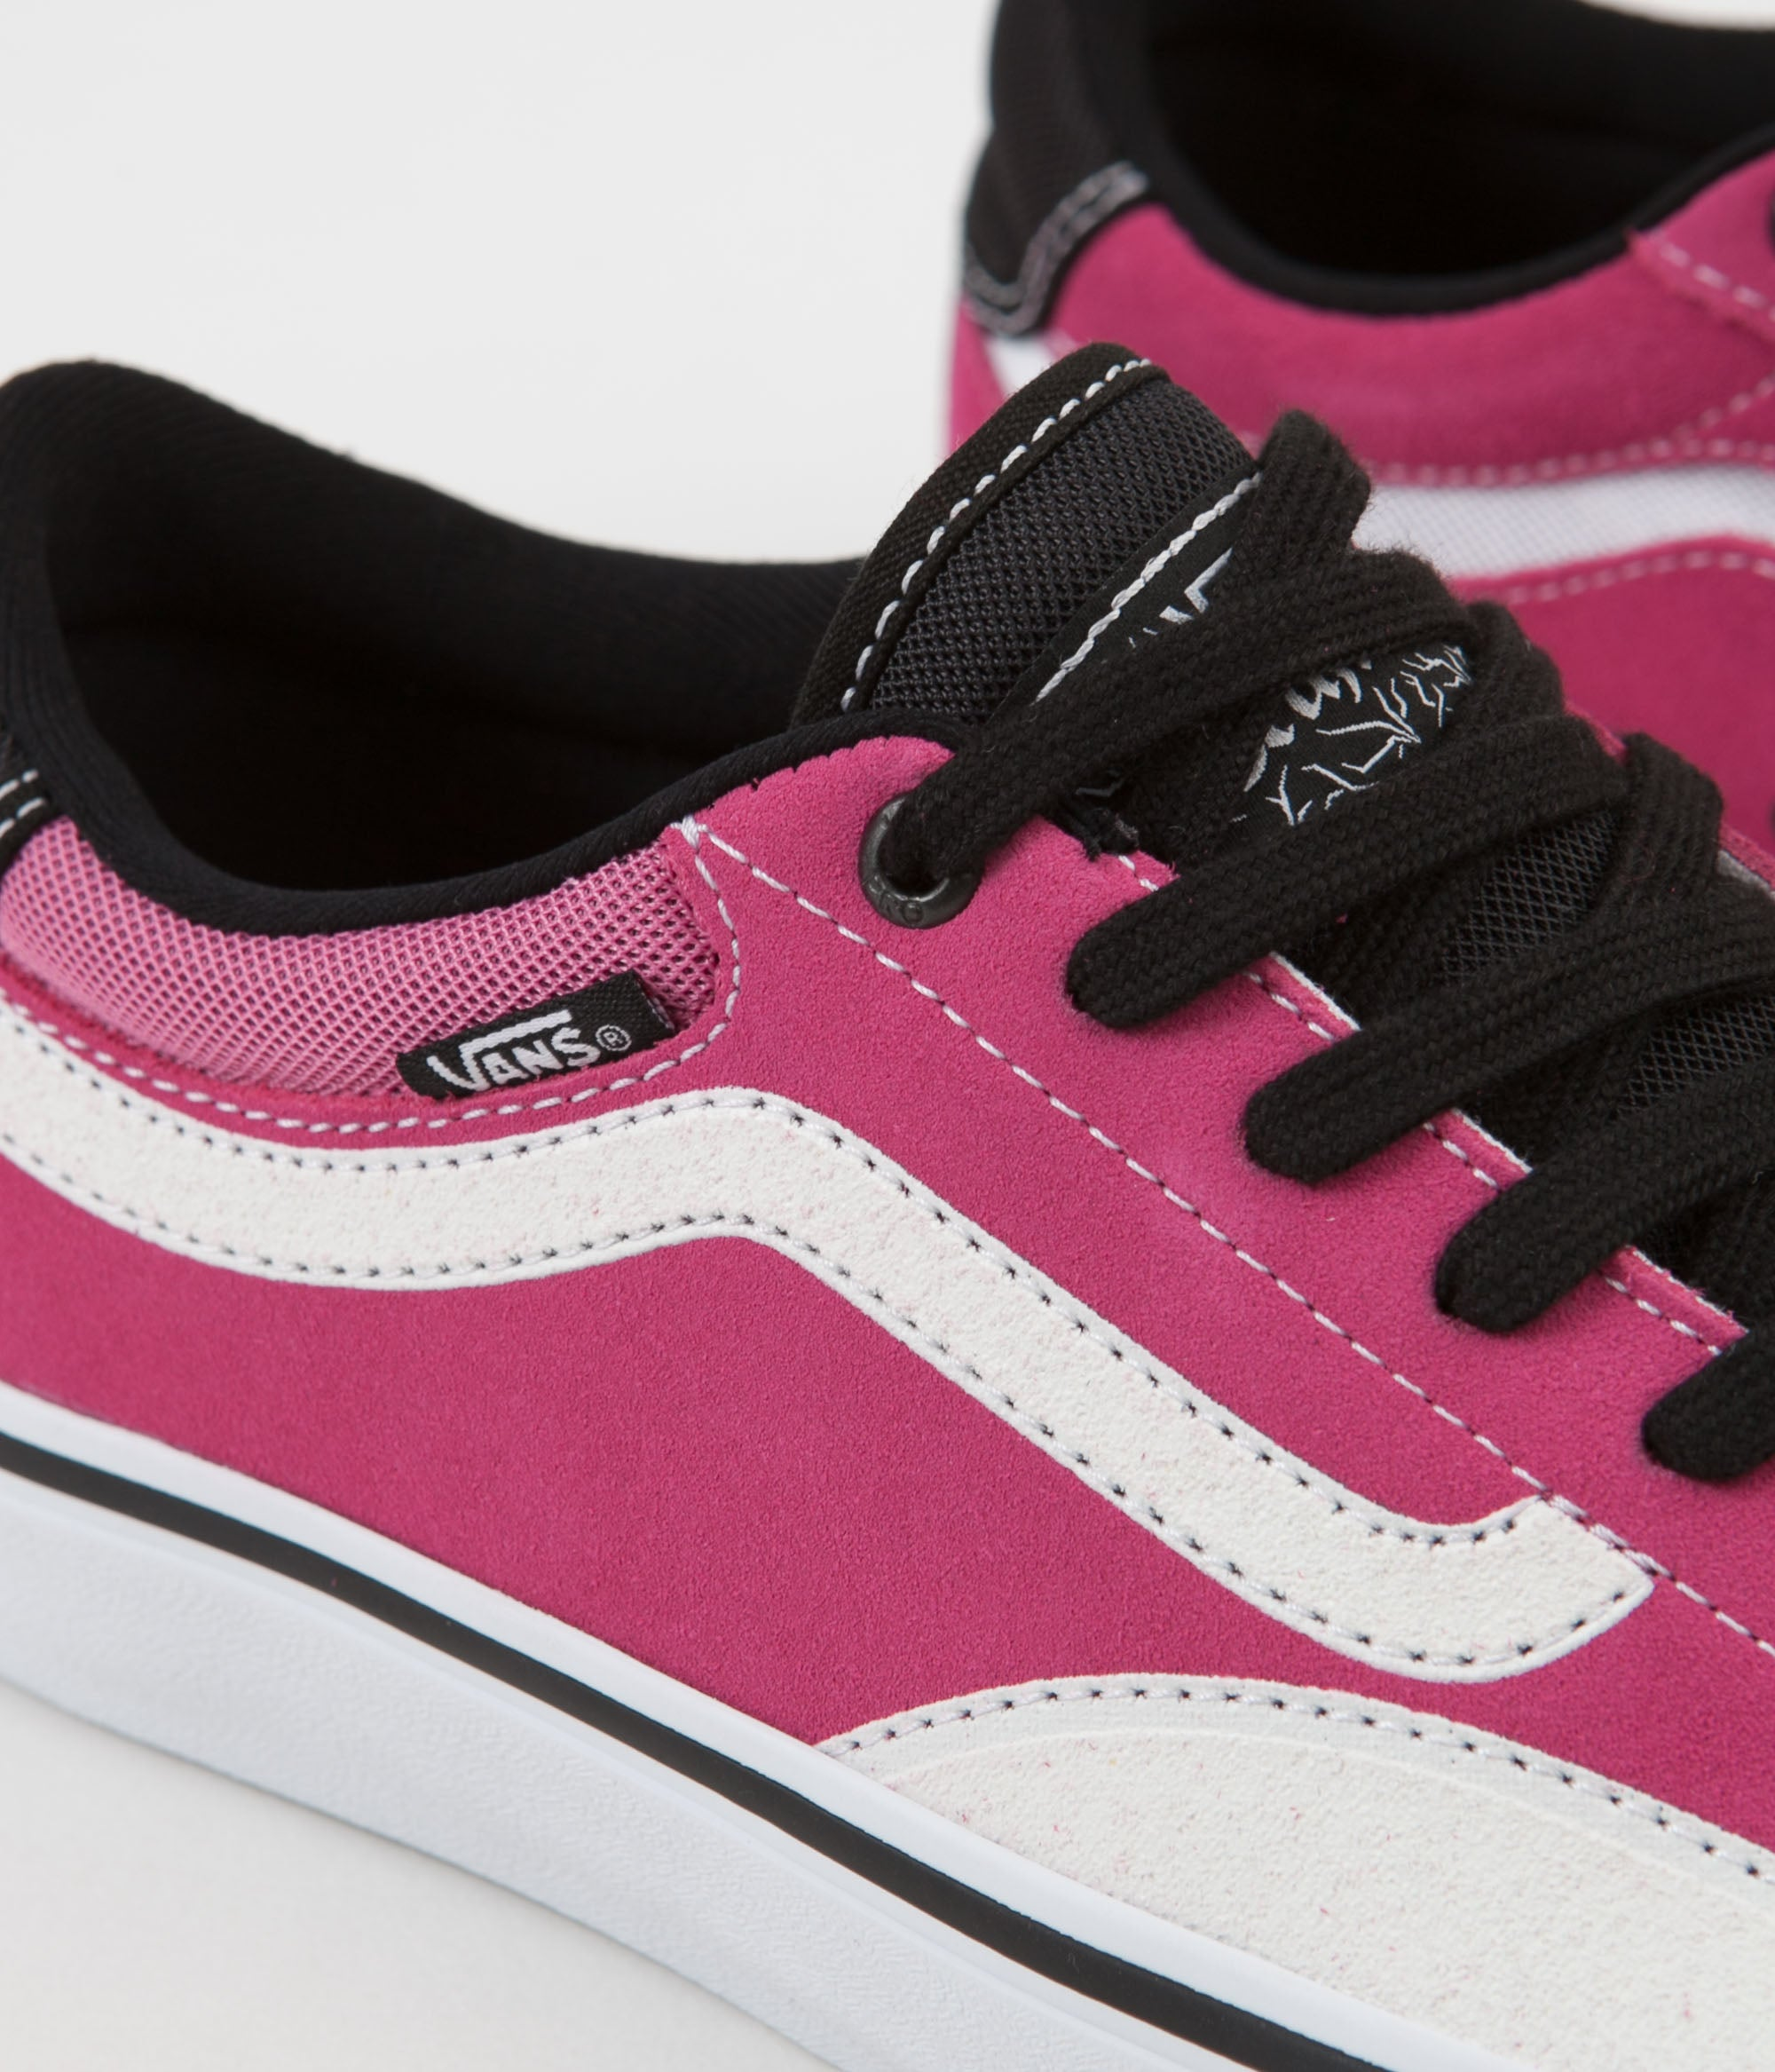 e4da93d4a11e9d ... Vans TNT Advanced Prototype Shoes - Black   Magenta   White ...